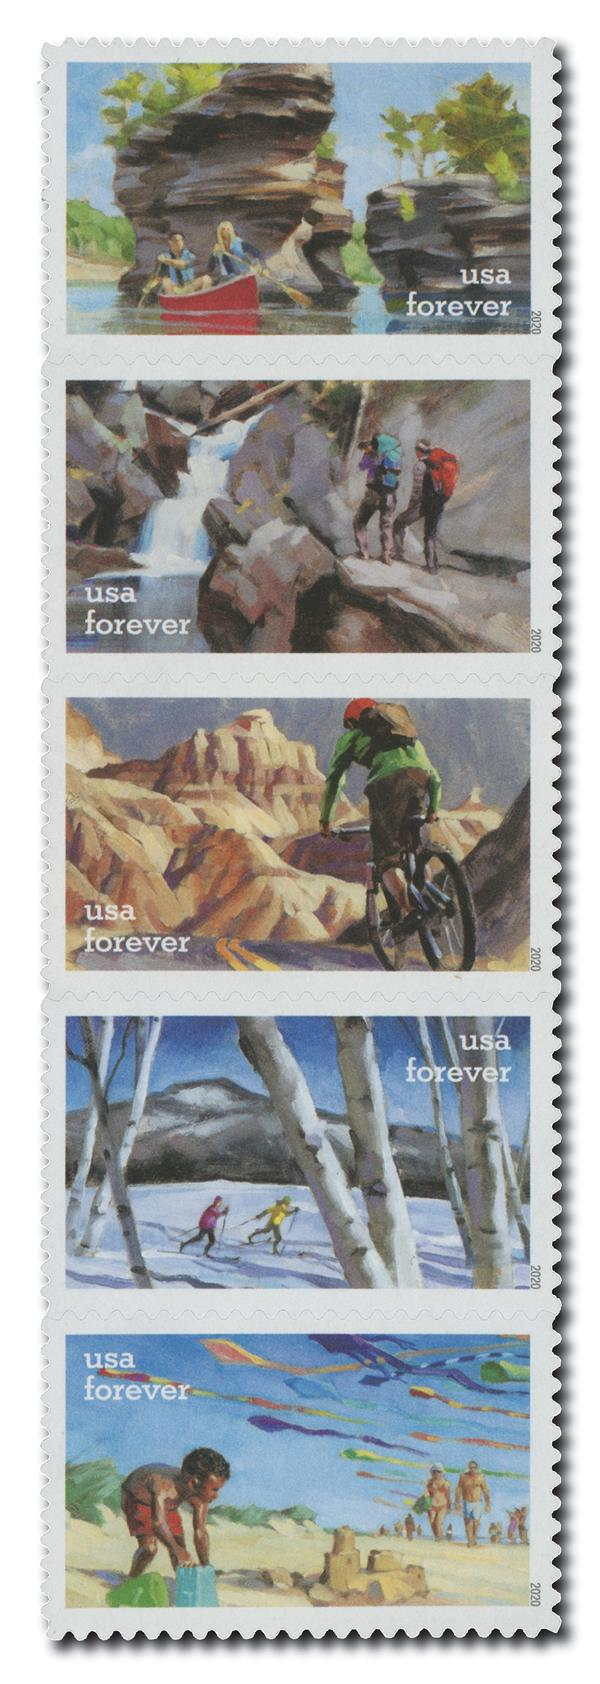 2020 First-Class Forever Stamps - Enjoy the Great Outdoors